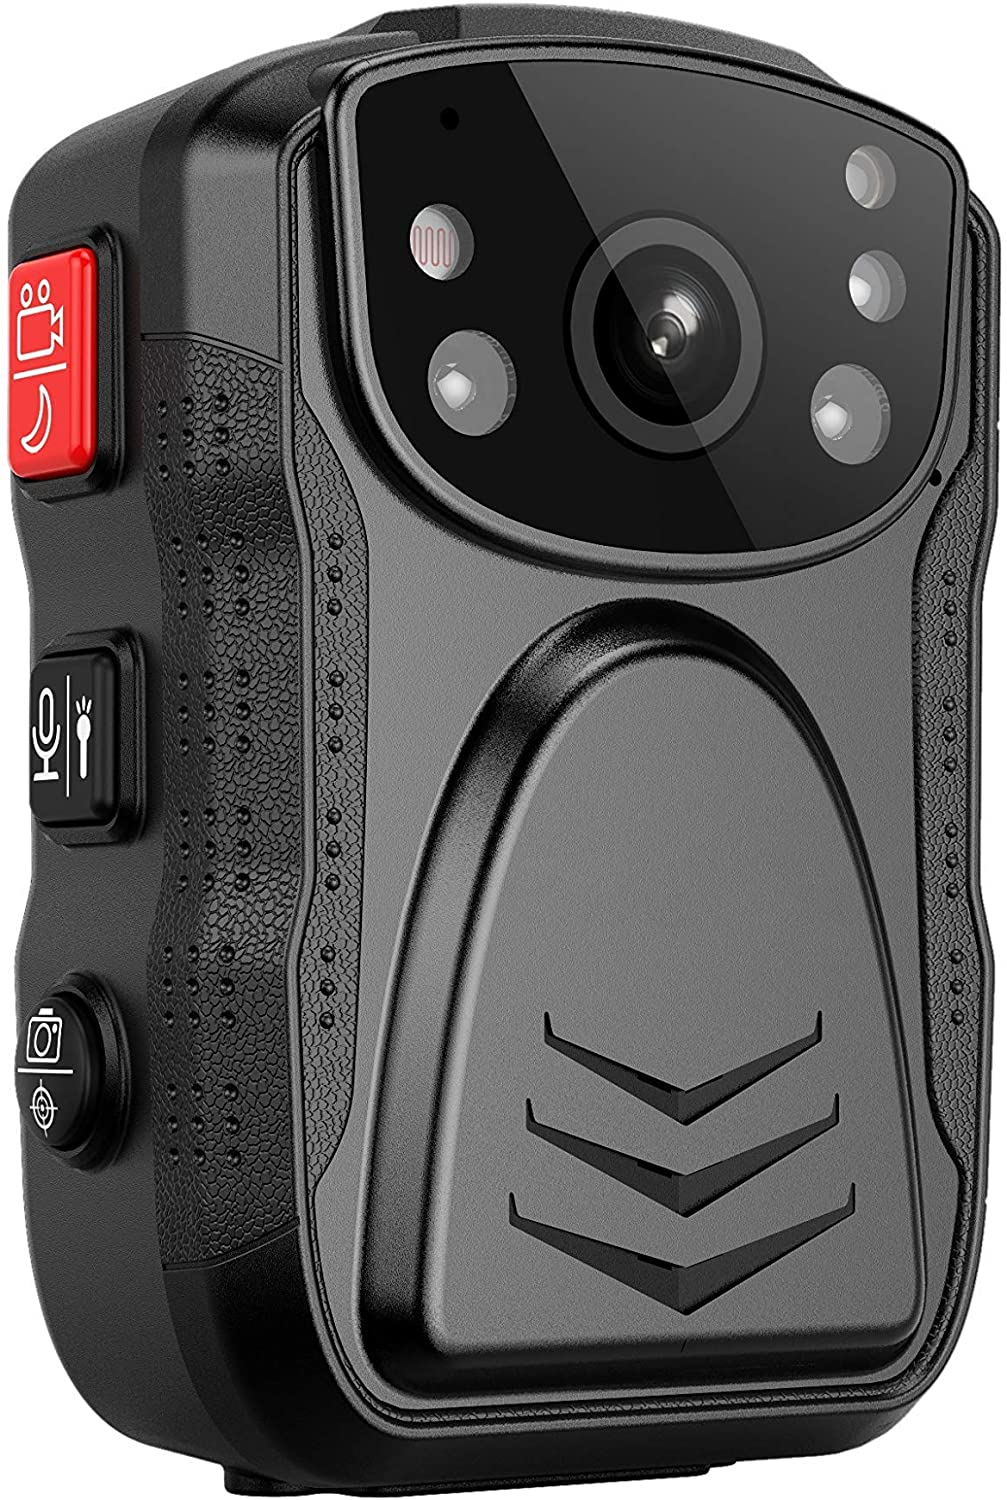 (Latest Gen)PatrolMaster 1296P UHD Body Camera with Audio (build-in 64GB), 2 Inch Display, Night Vision, Waterproof, Shockproof, Body Worn Camera with Compact Design, Police Camera for Law Enforcement